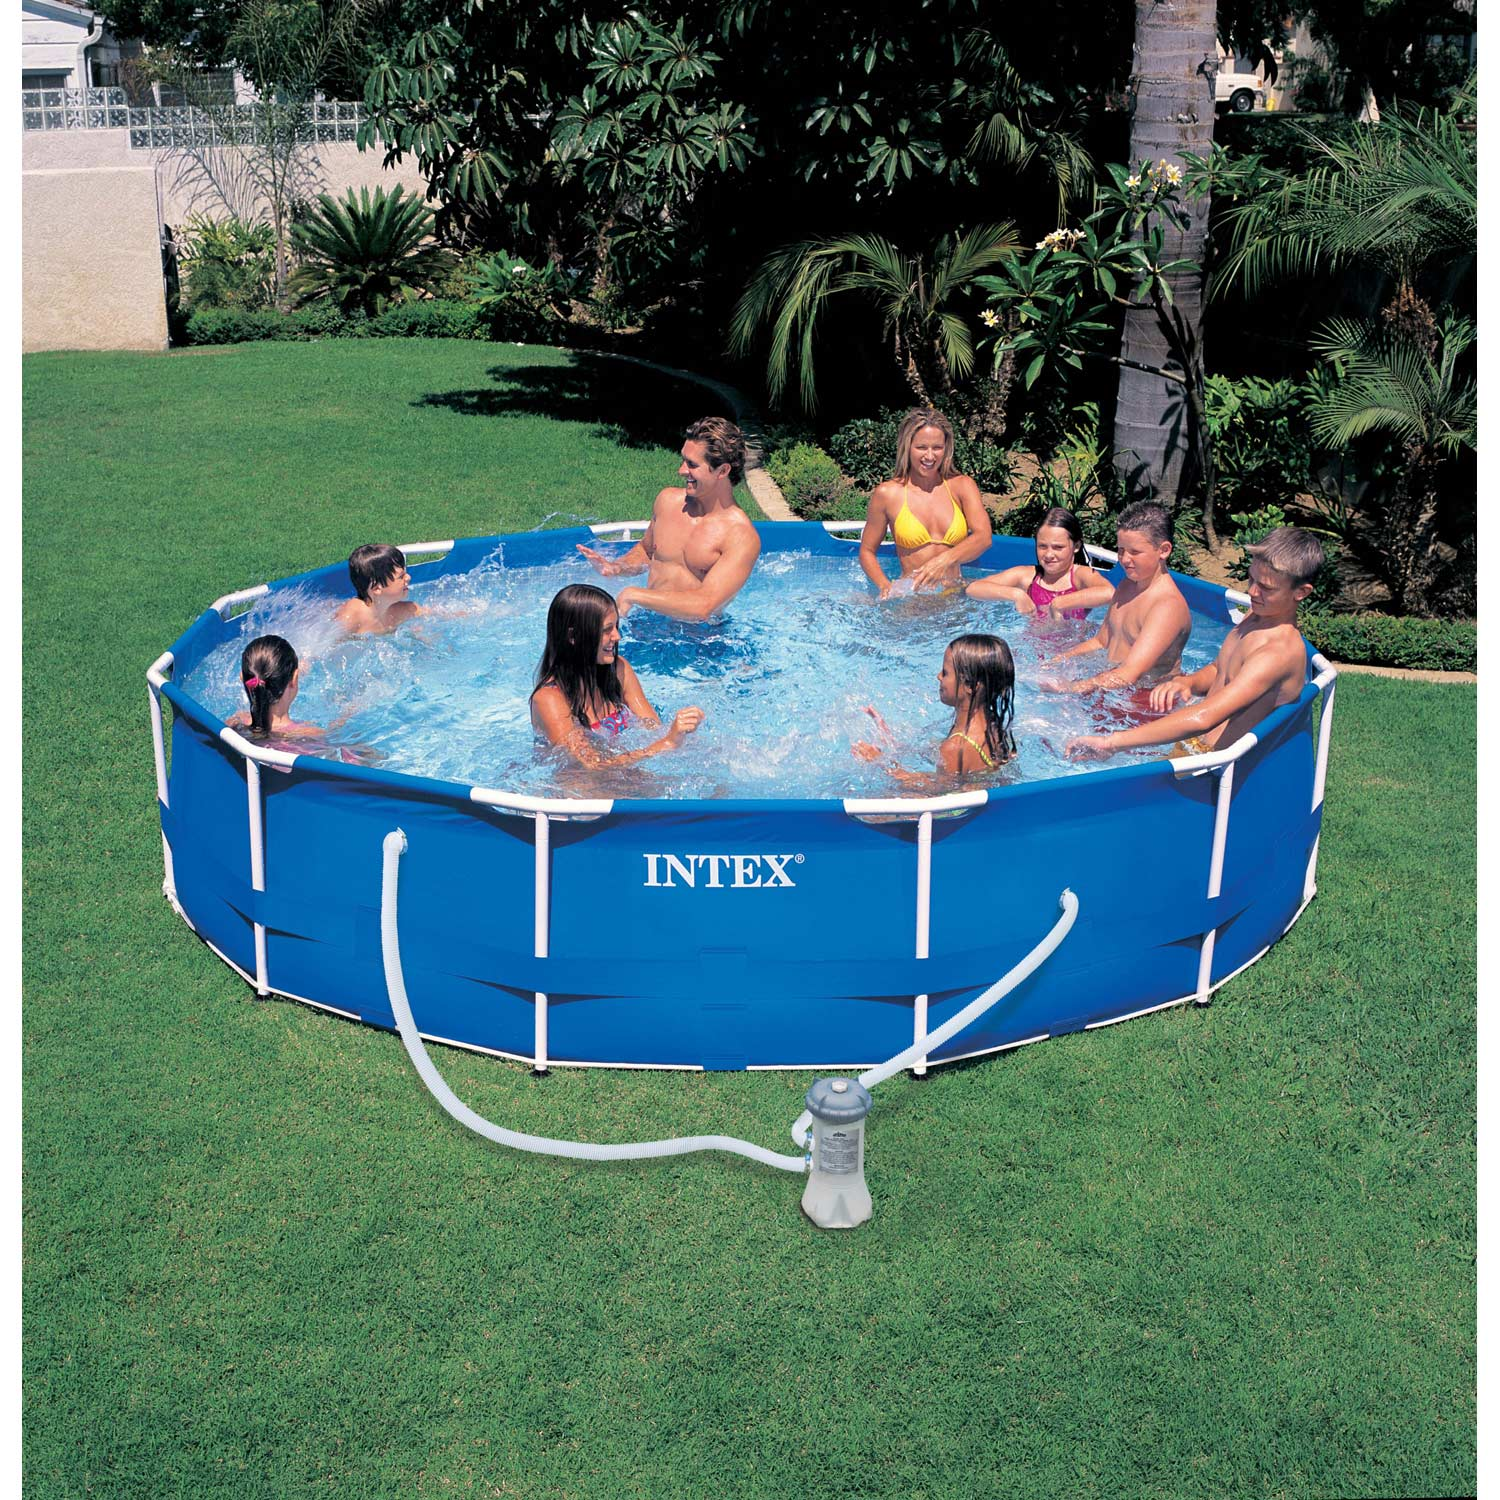 Piscine hors sol autoportante tubulaire m tal frame intex for Enrouleur bache piscine hors sol tubulaire intex